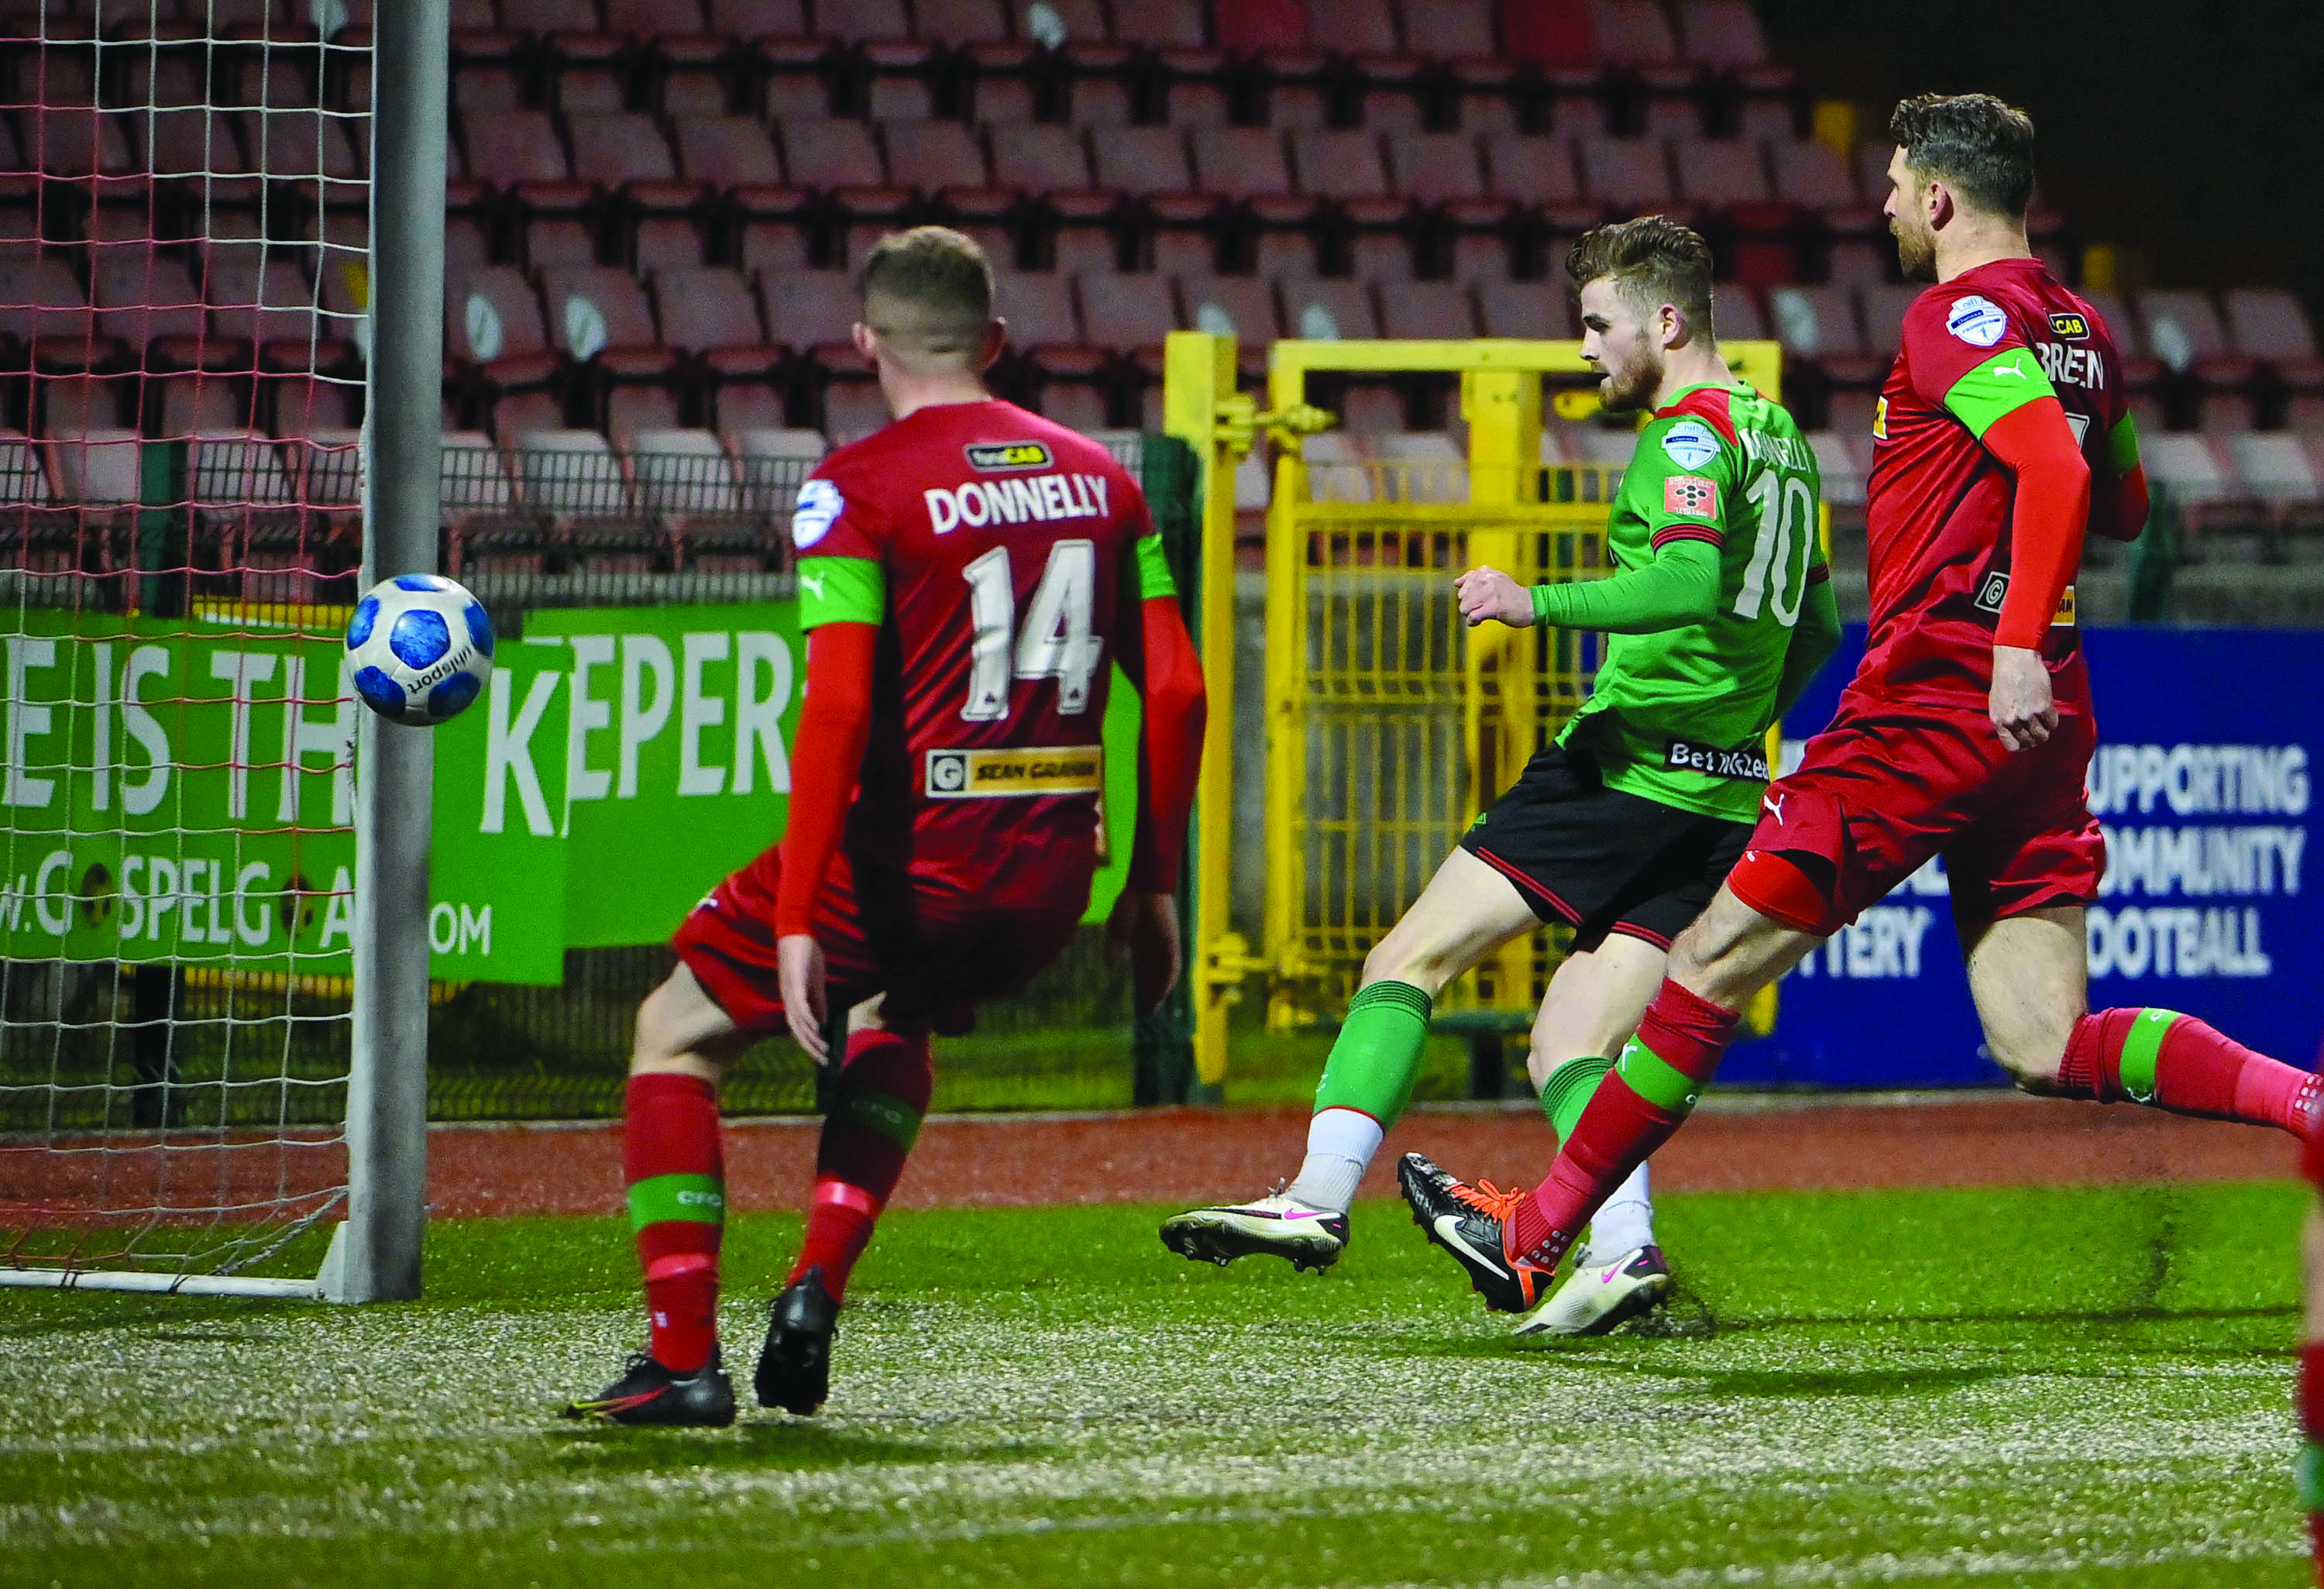 Glentoran striker Rory Donnelly slots home the opener against his former club in Tuesday night's 2-0 win over Cliftonville at Solitude